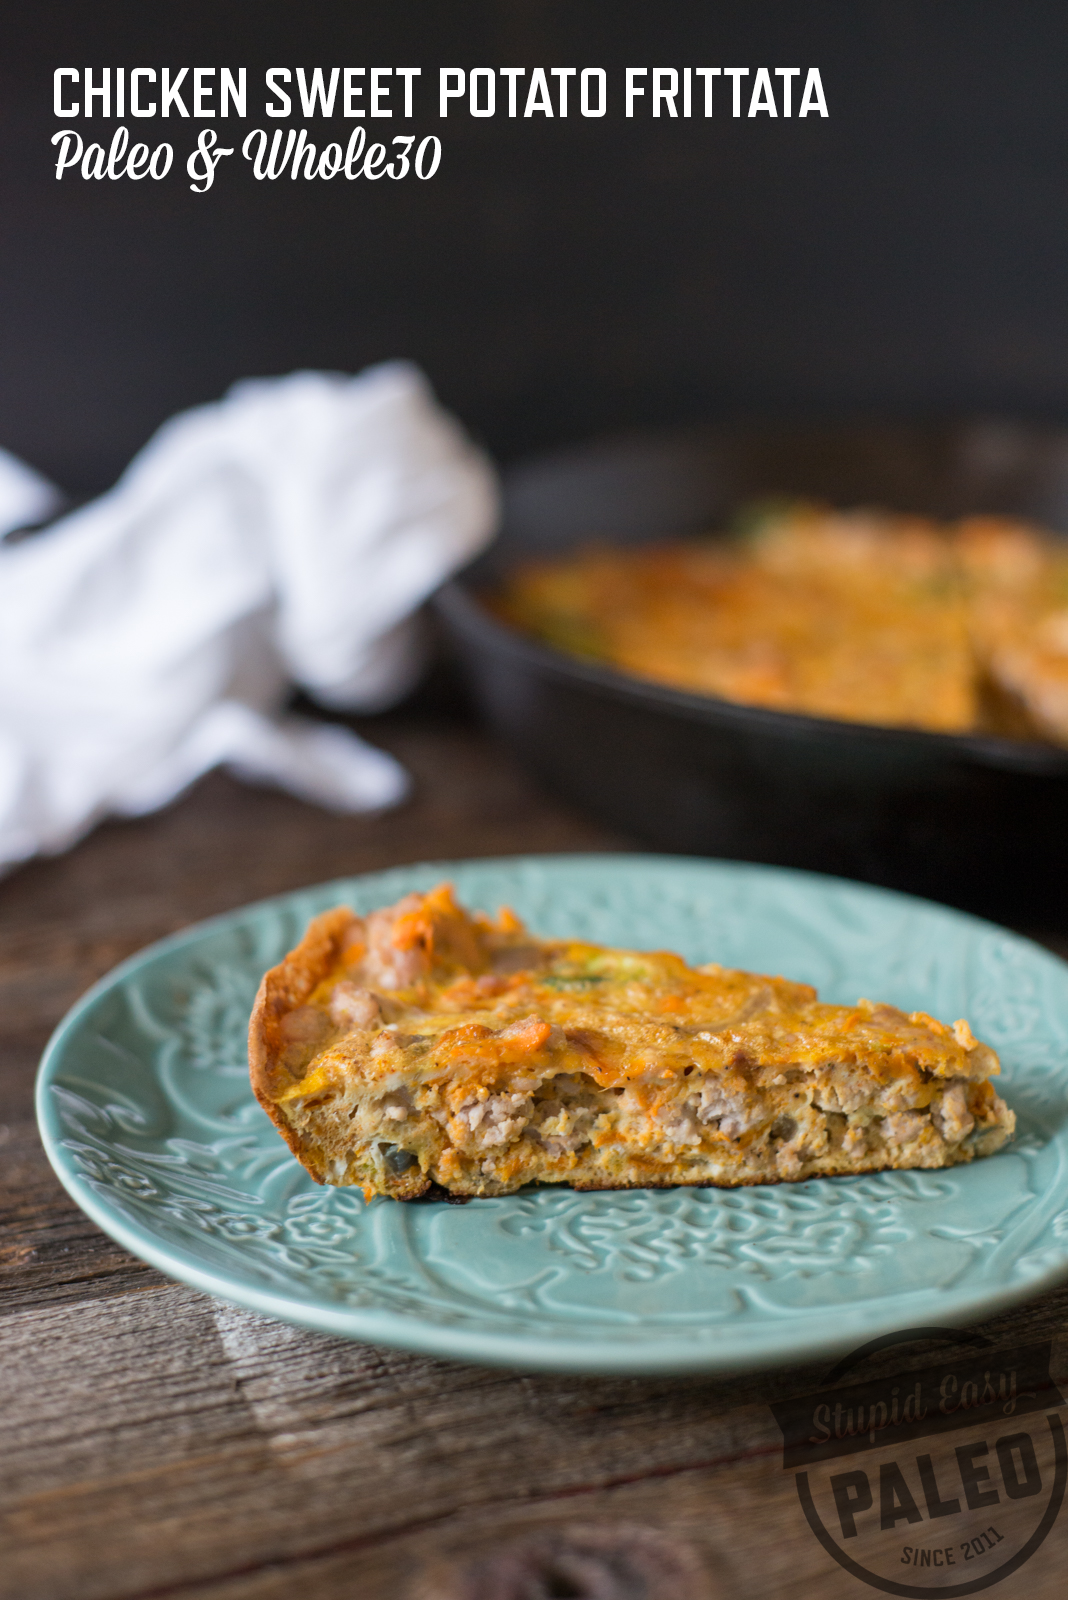 Paleo Chicken Sweet Potato Frittata is one of my favorite post-workout foods because it's 1) packed with protein and 2) totally portable. In fact, it's totally representative of the tasty post-workout bites in my upcoming cookbook, The Performance Paleo Cookbook! (It comes out in just a little over a month, and it's still on pre-order for 25 off!)   StupidEasyPaleo.com